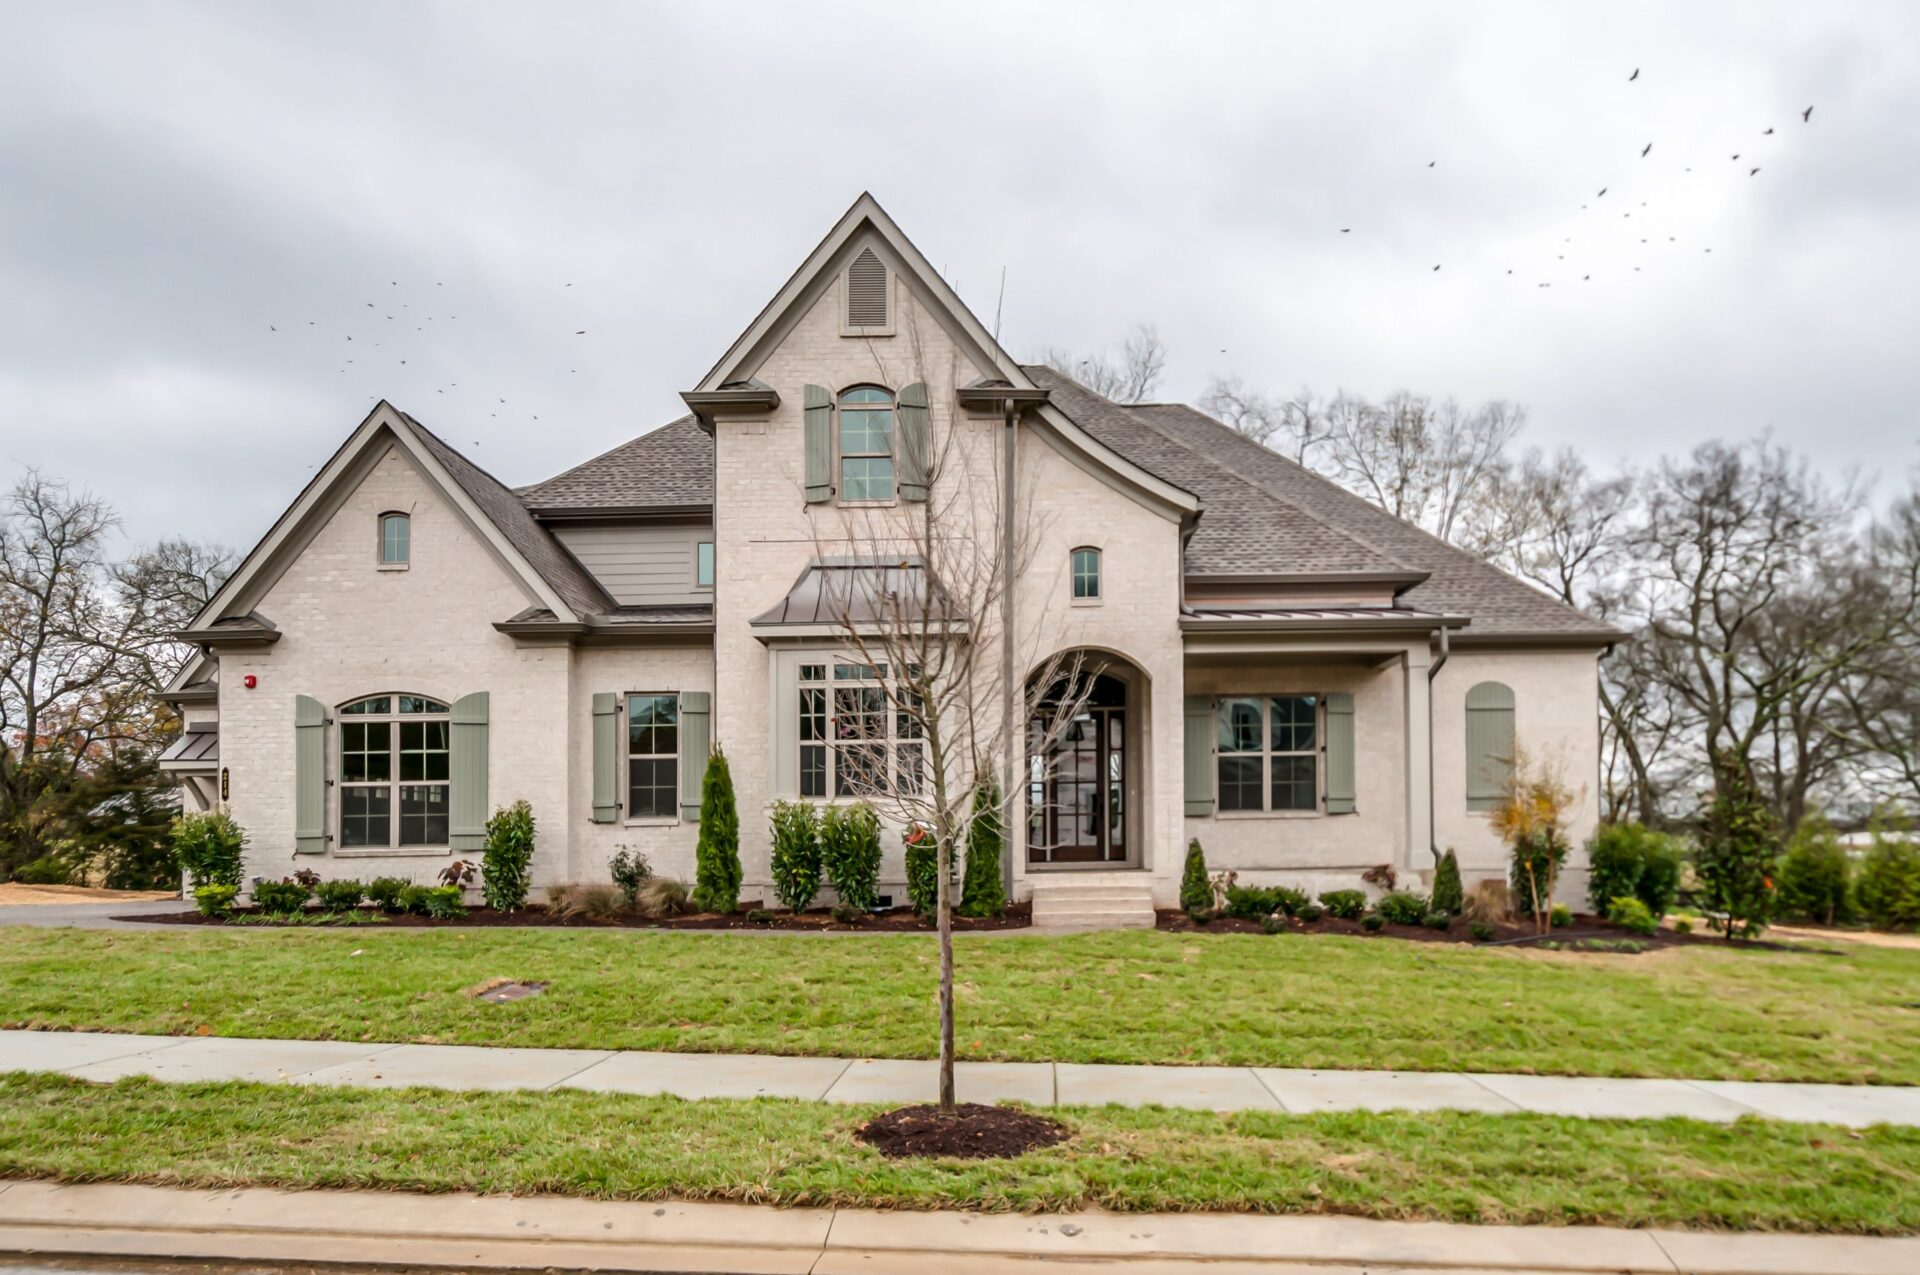 St Andrews III F - High-end home builders for luxury homes - luxury home builder | Nashville, TN